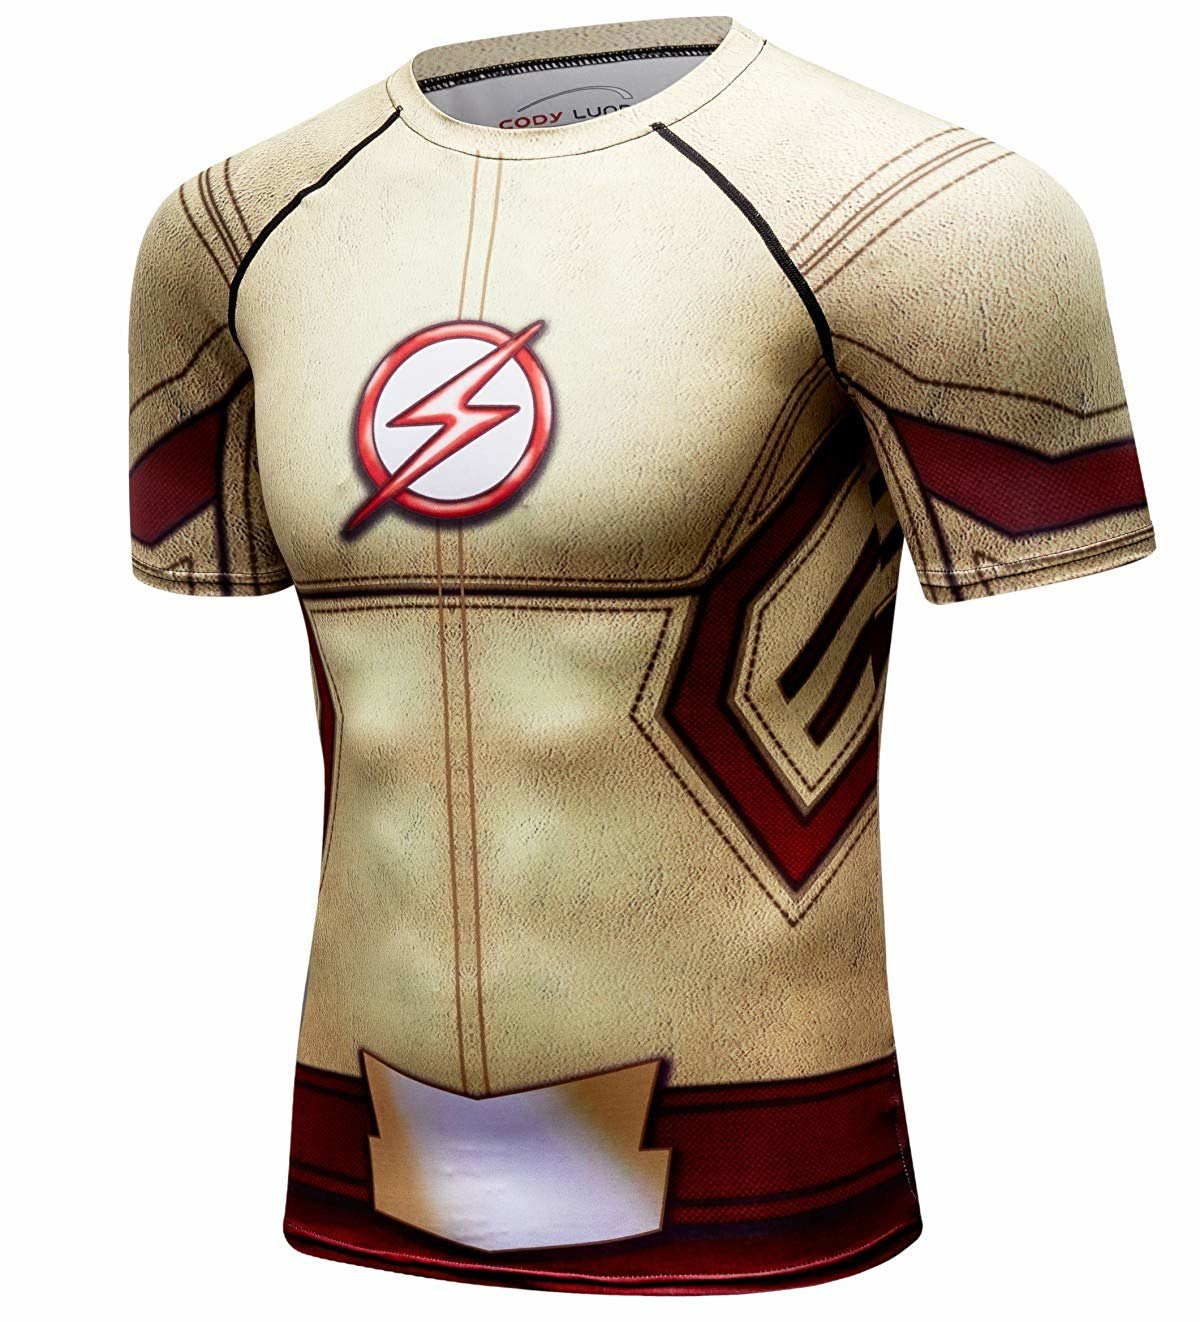 the flash baseball shirt